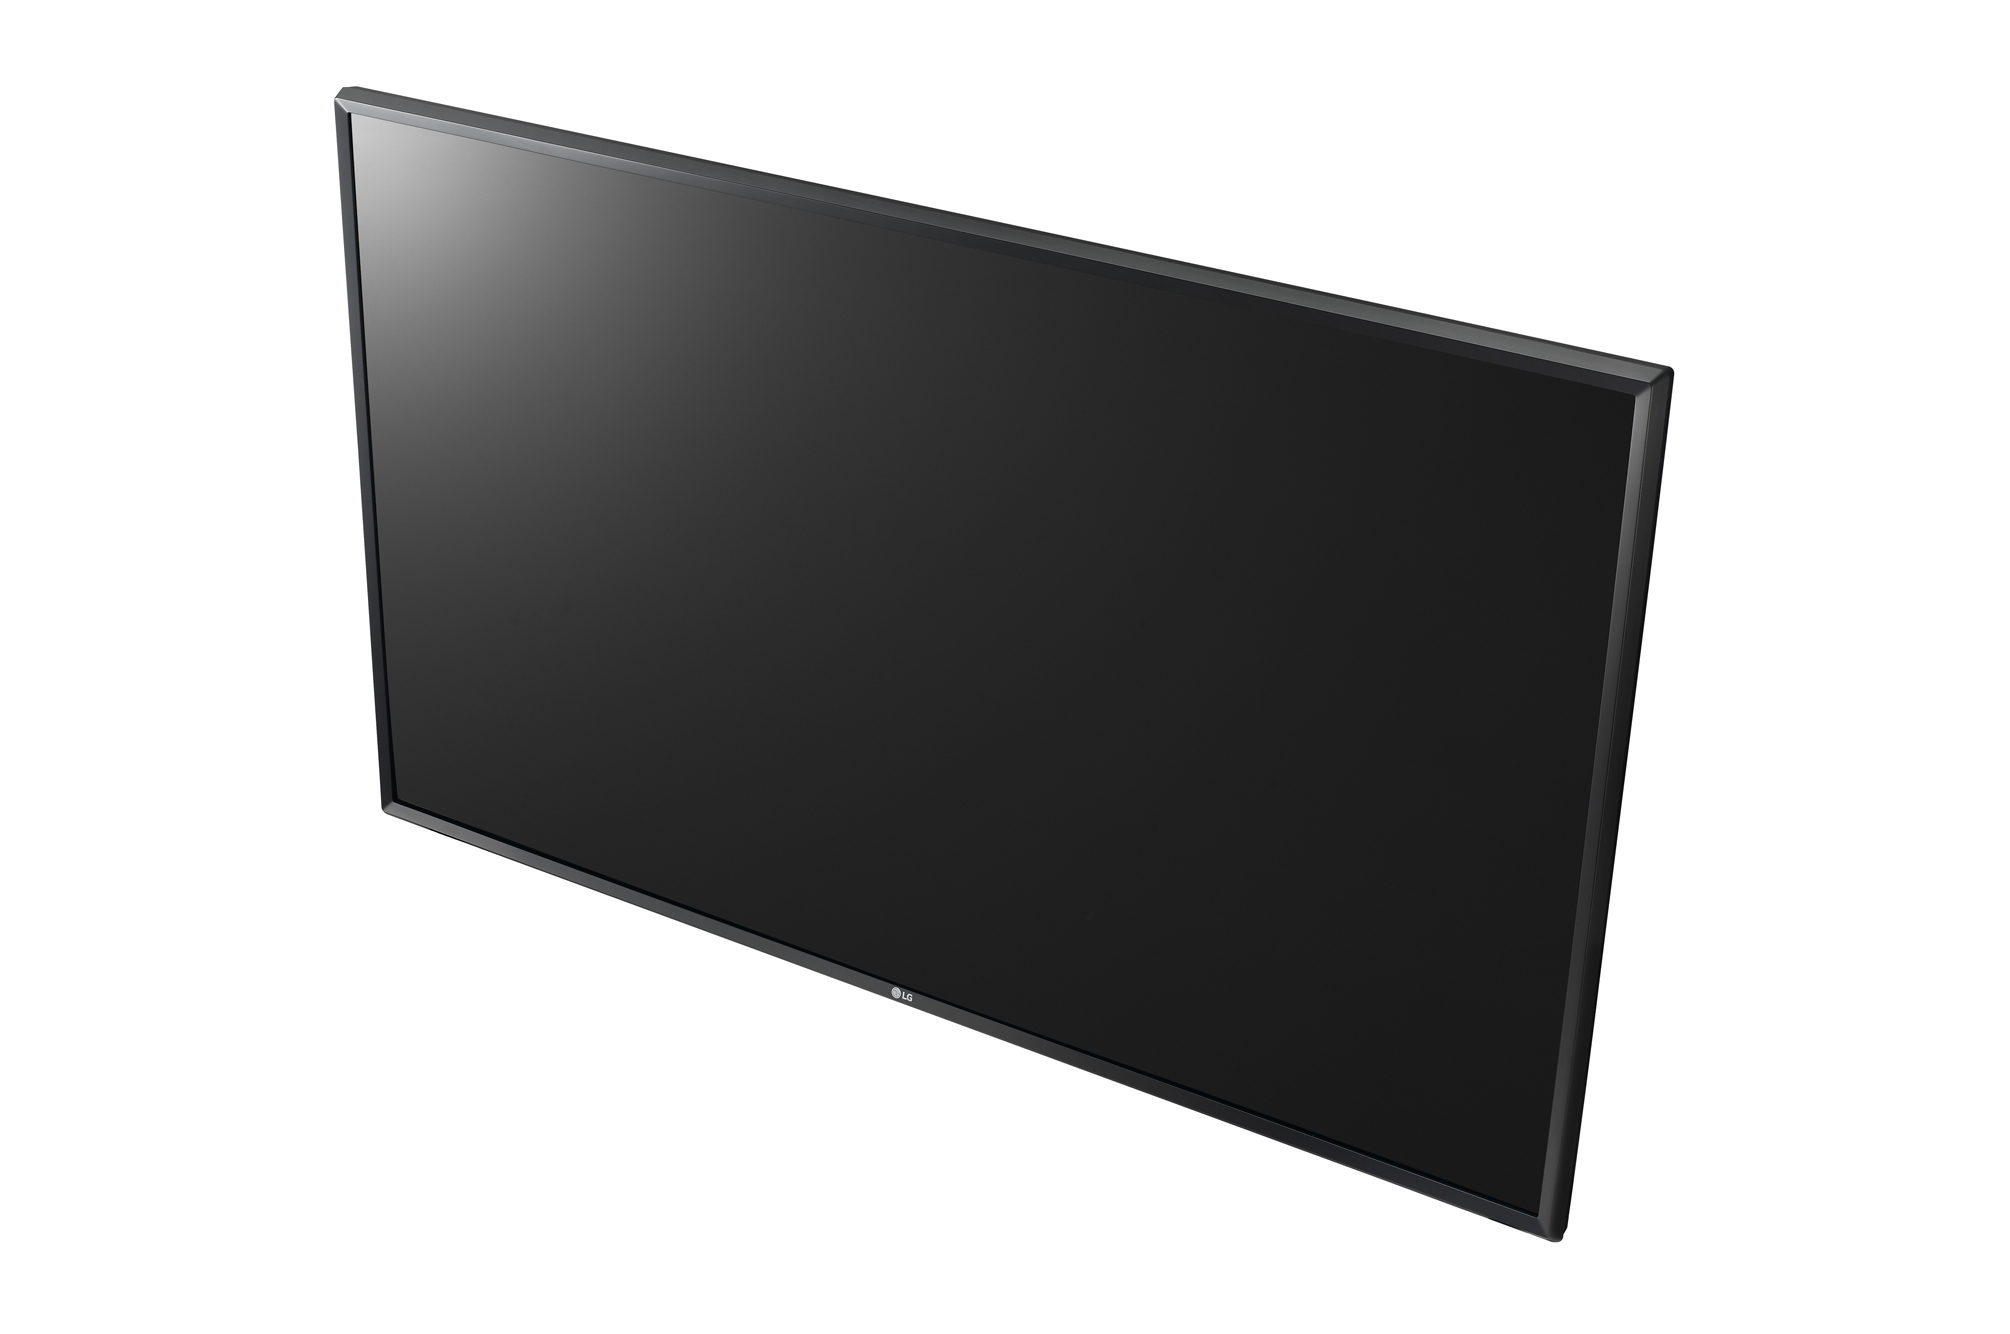 LG Special 32LT662M (NA) 9